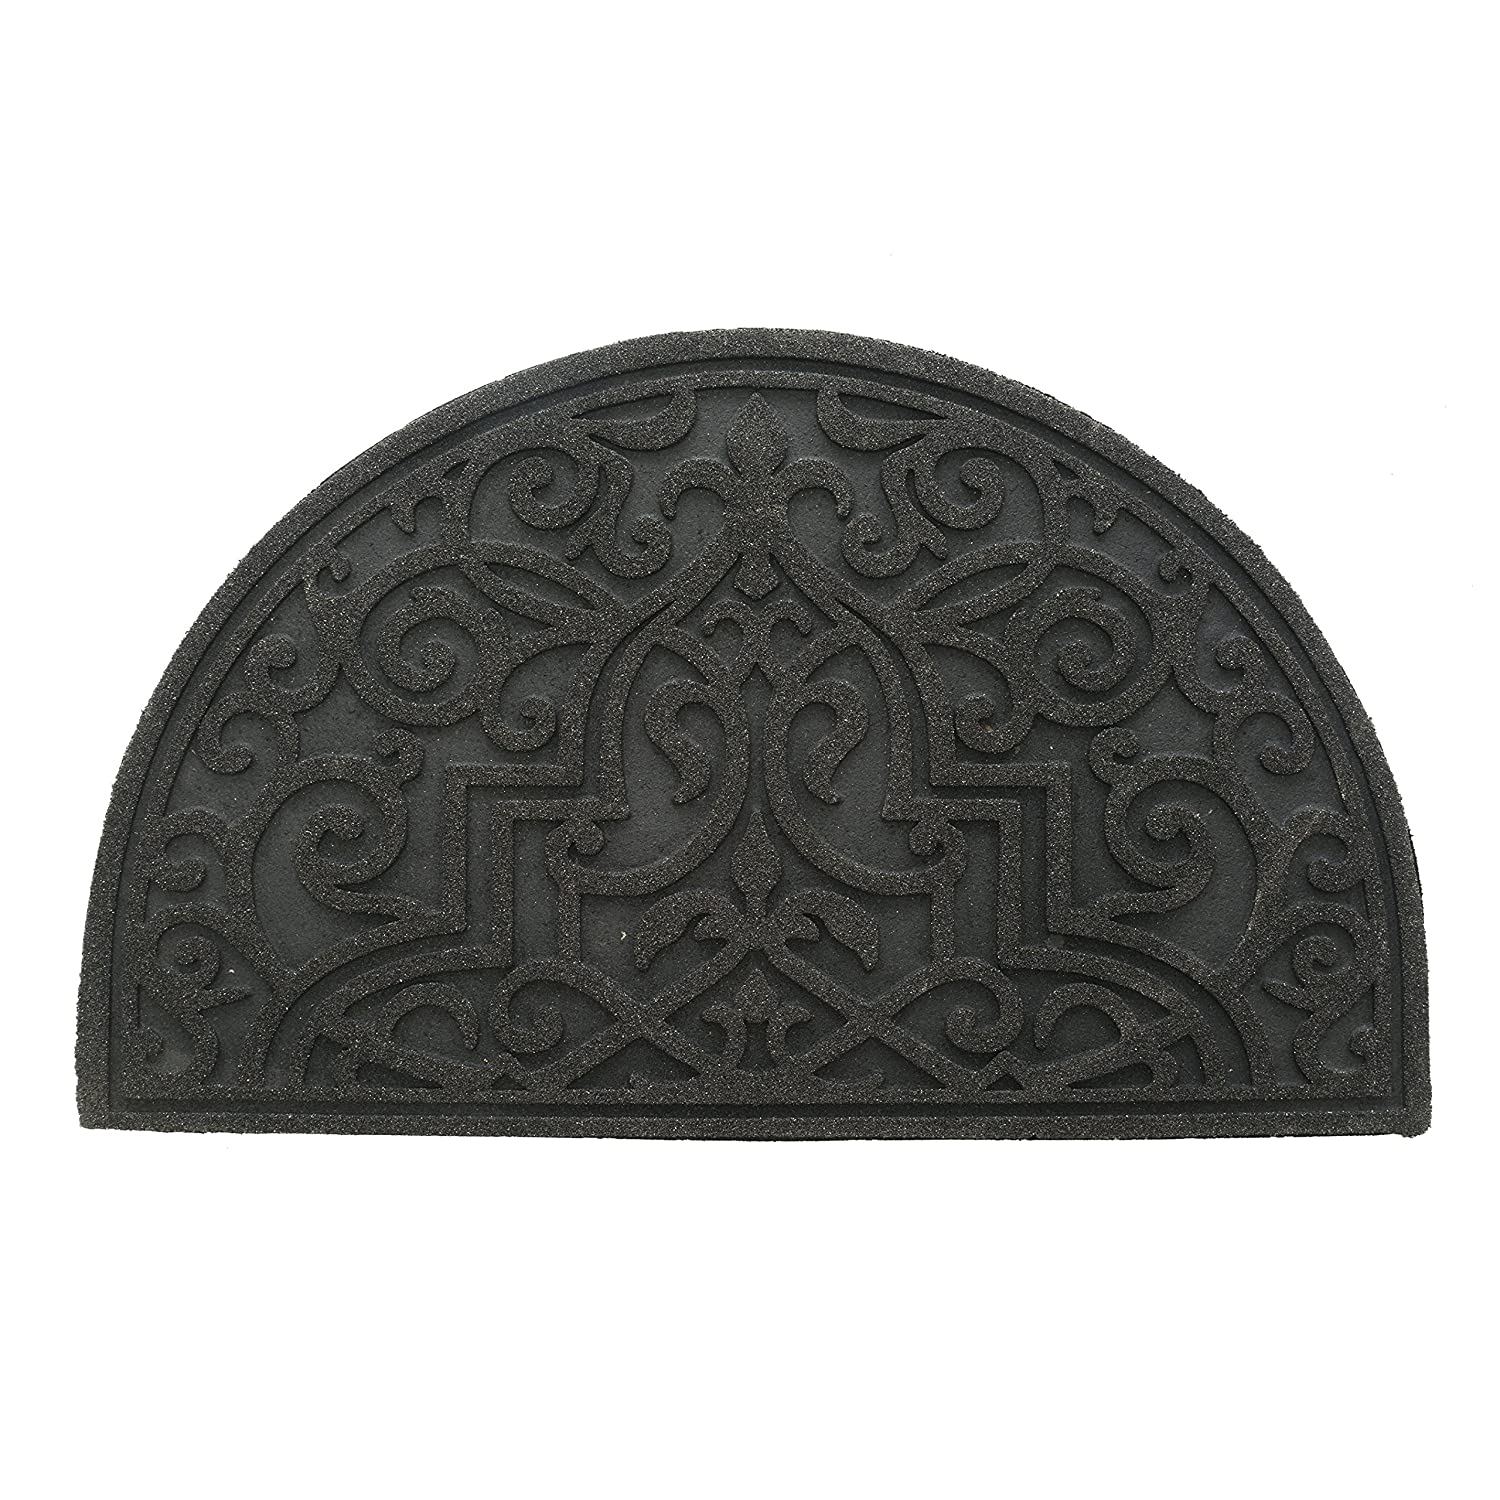 Stephan Roberts 30N-18RM65-06 Recycled Rubber Doormat, 18'' x 30'' Gibraltar Scroll Slice Stone